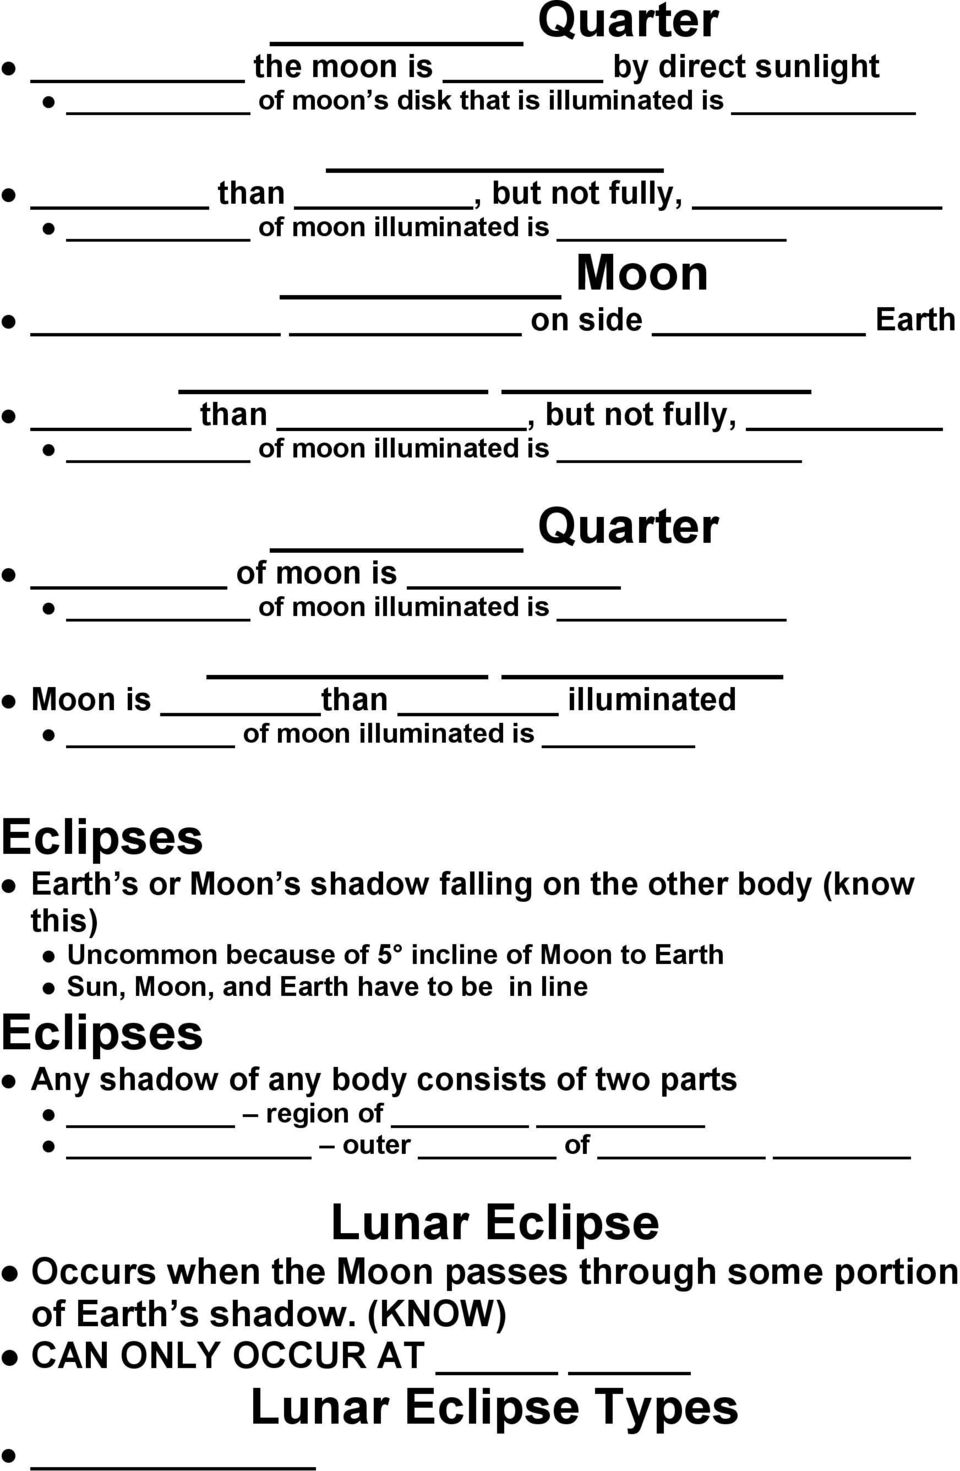 falling on the other body (know this) Uncommon because of 5 incline of Moon to Earth Sun, Moon, and Earth have to be in line Eclipses Any shadow of any body